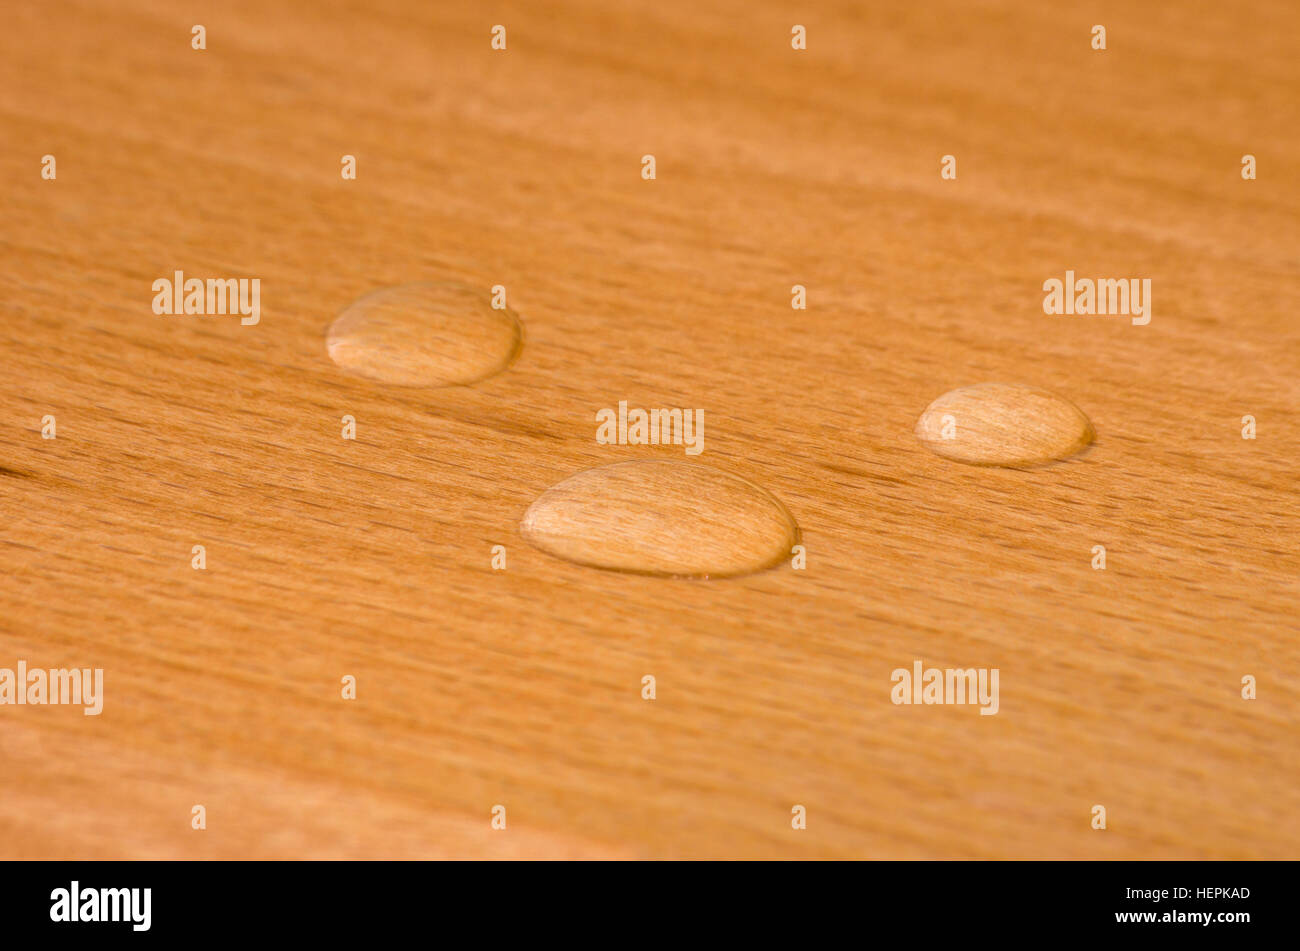 Water beads on finished beechwood. - Stock Image